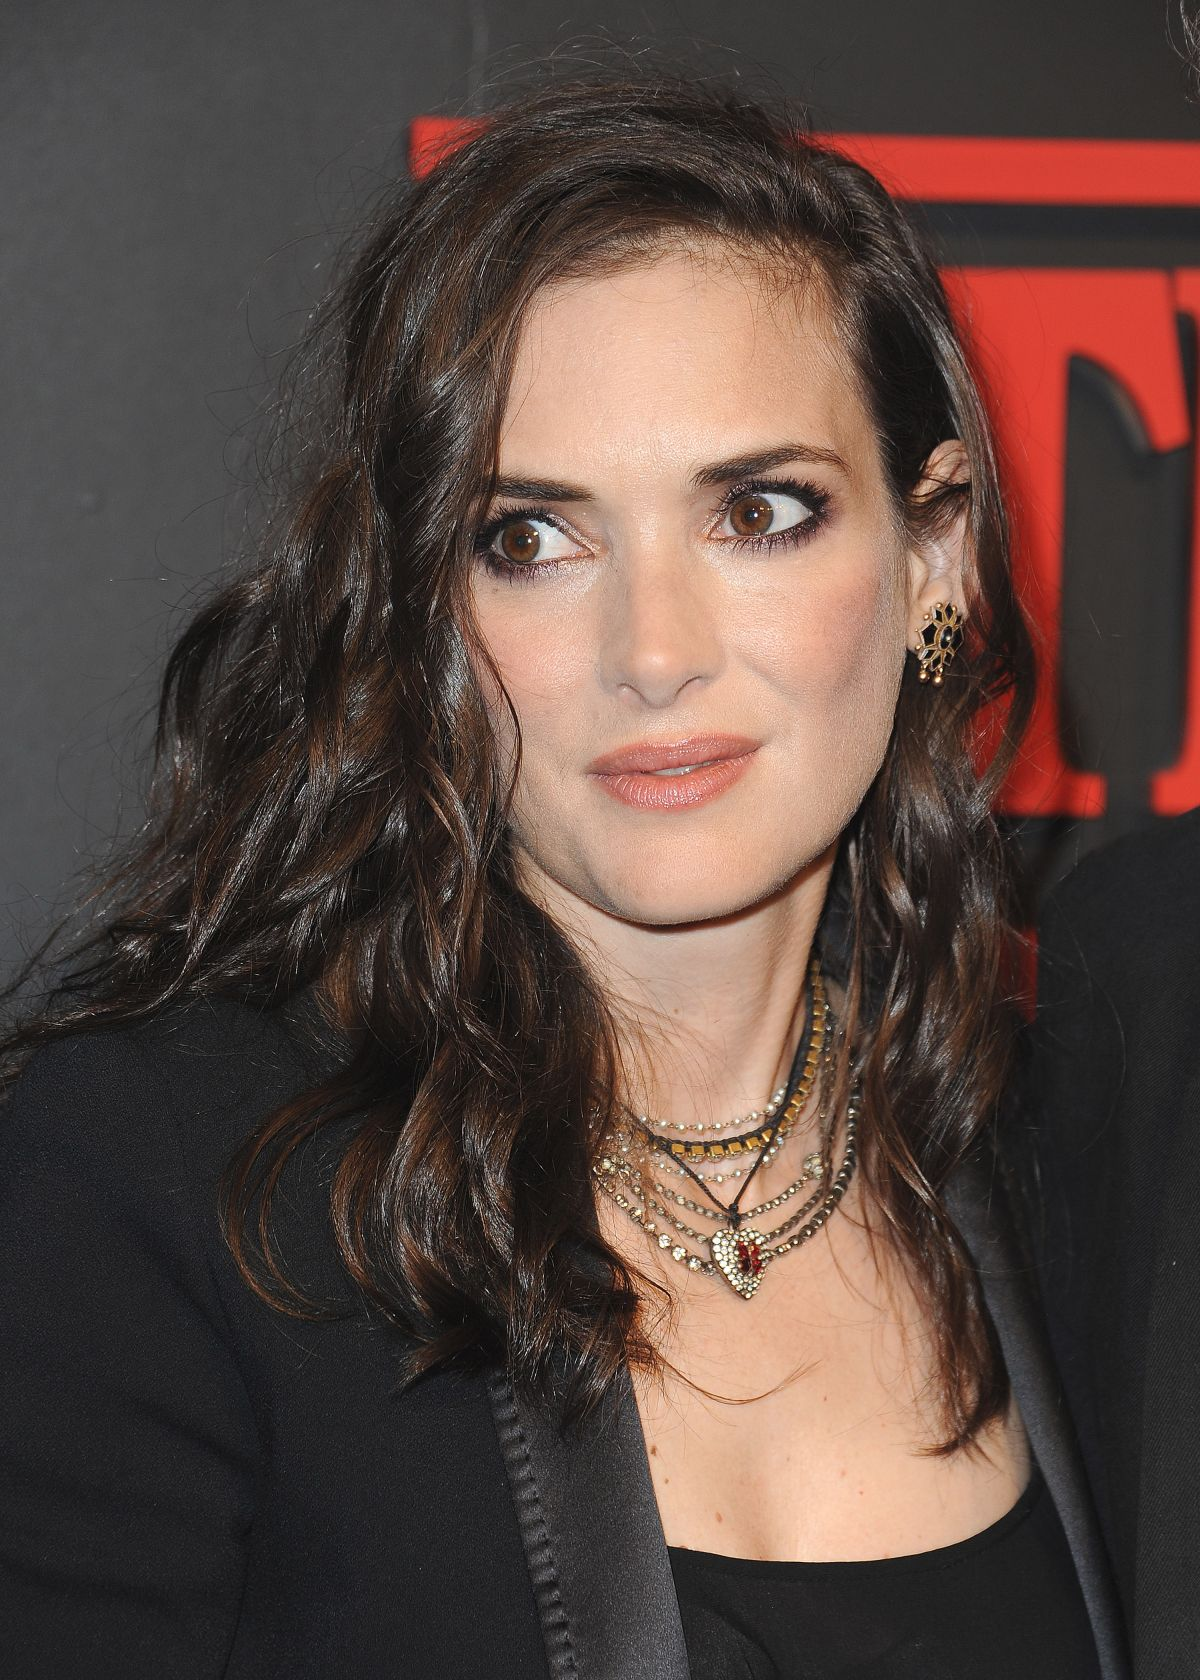 winona ryder - photo #24